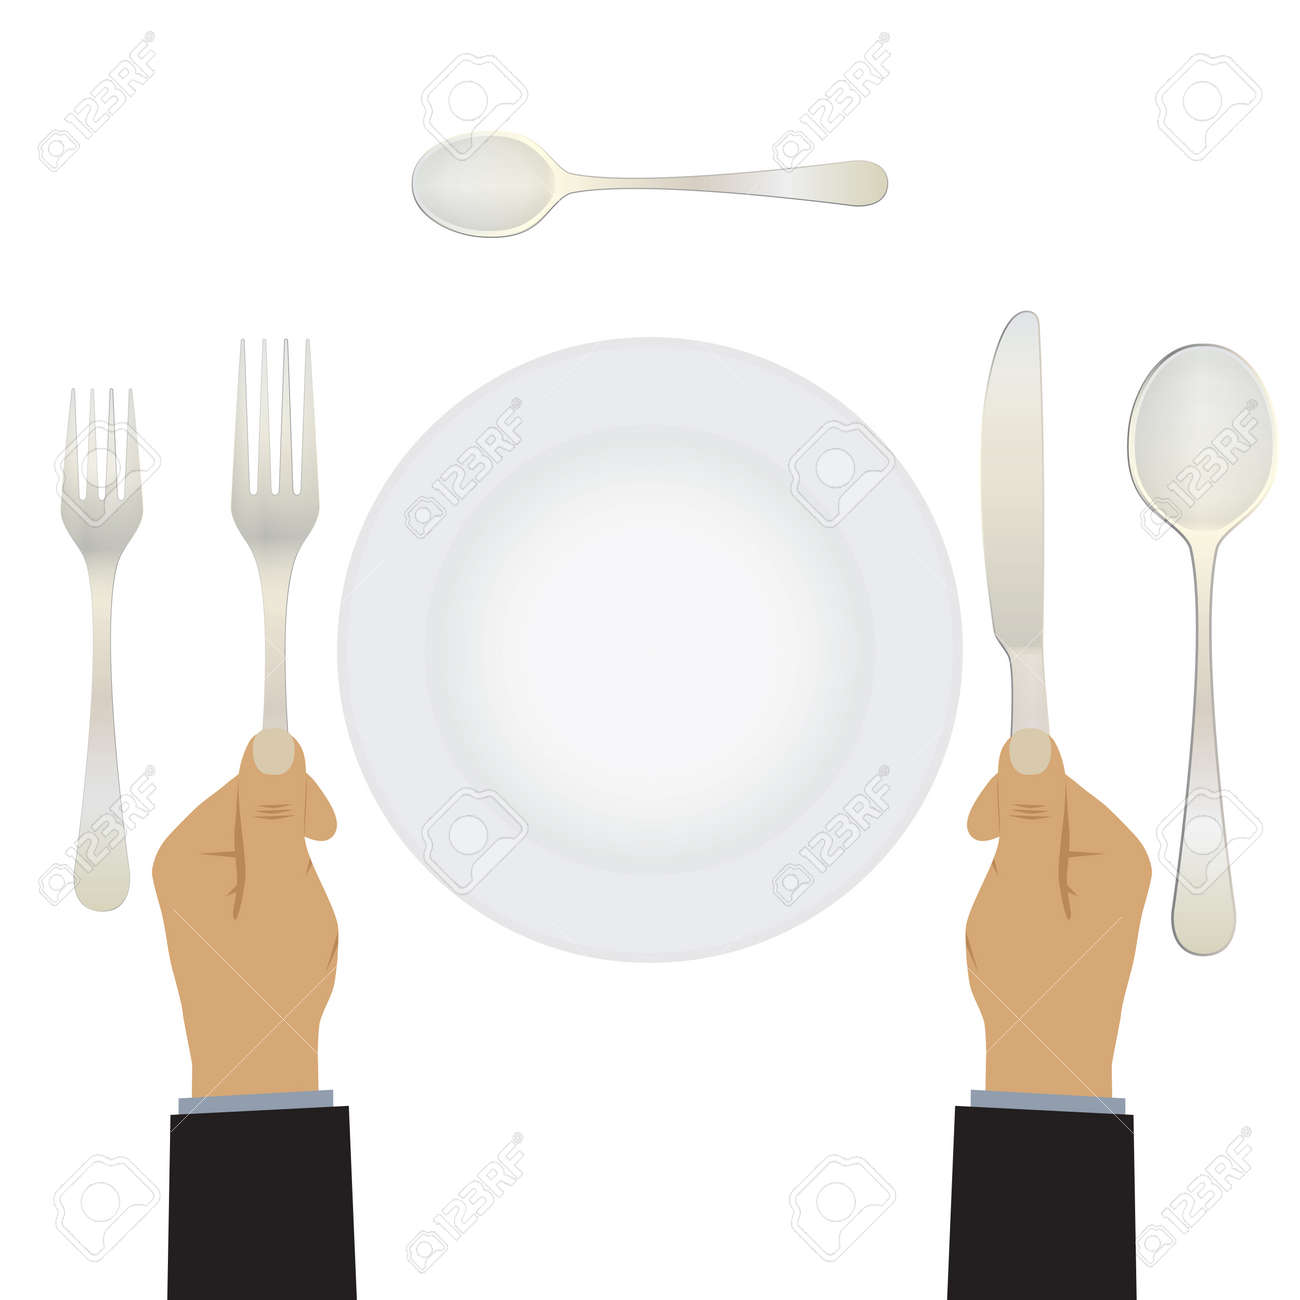 Hand with a knife and fork. Tableware. Table setting. Etiquette. Top view  sc 1 st  123RF.com & Hand With A Knife And Fork. Tableware. Table Setting. Etiquette ...